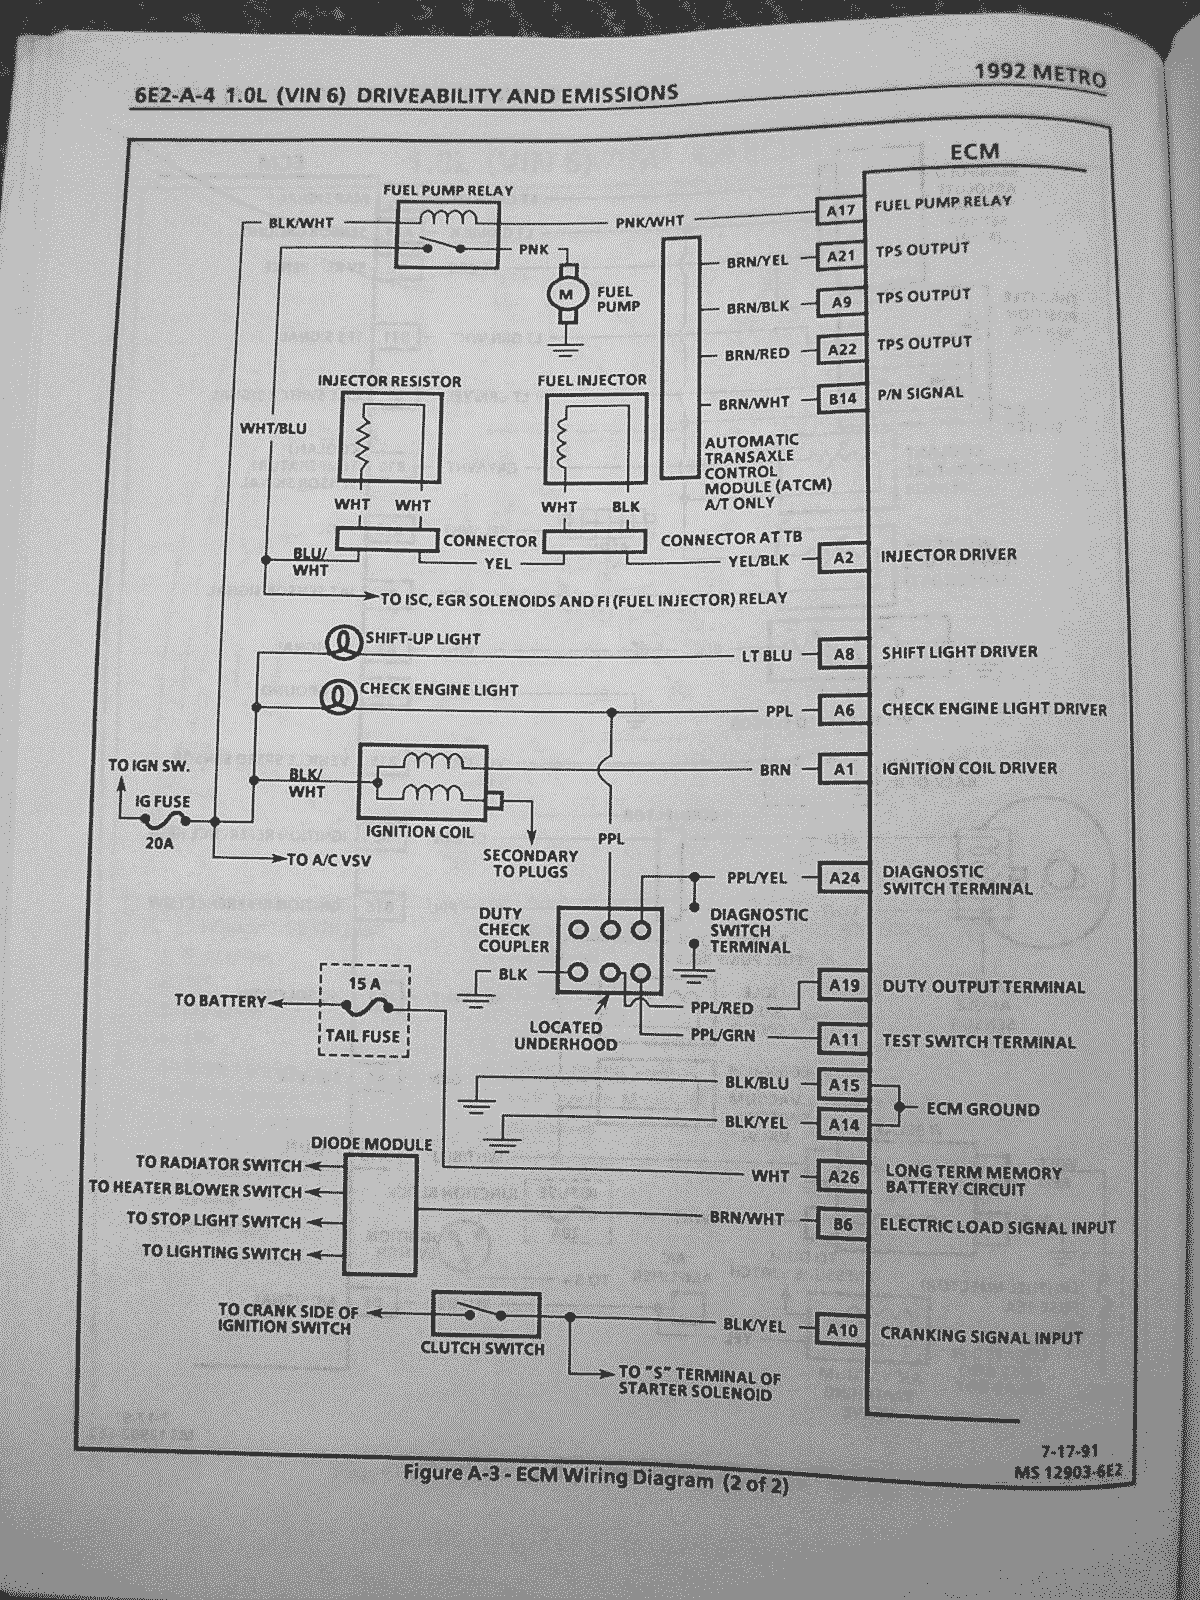 6e2 a 4 geo metro and suzuki swift wiring diagrams metroxfi com 2000 chevy metro radio wiring diagram at cos-gaming.co